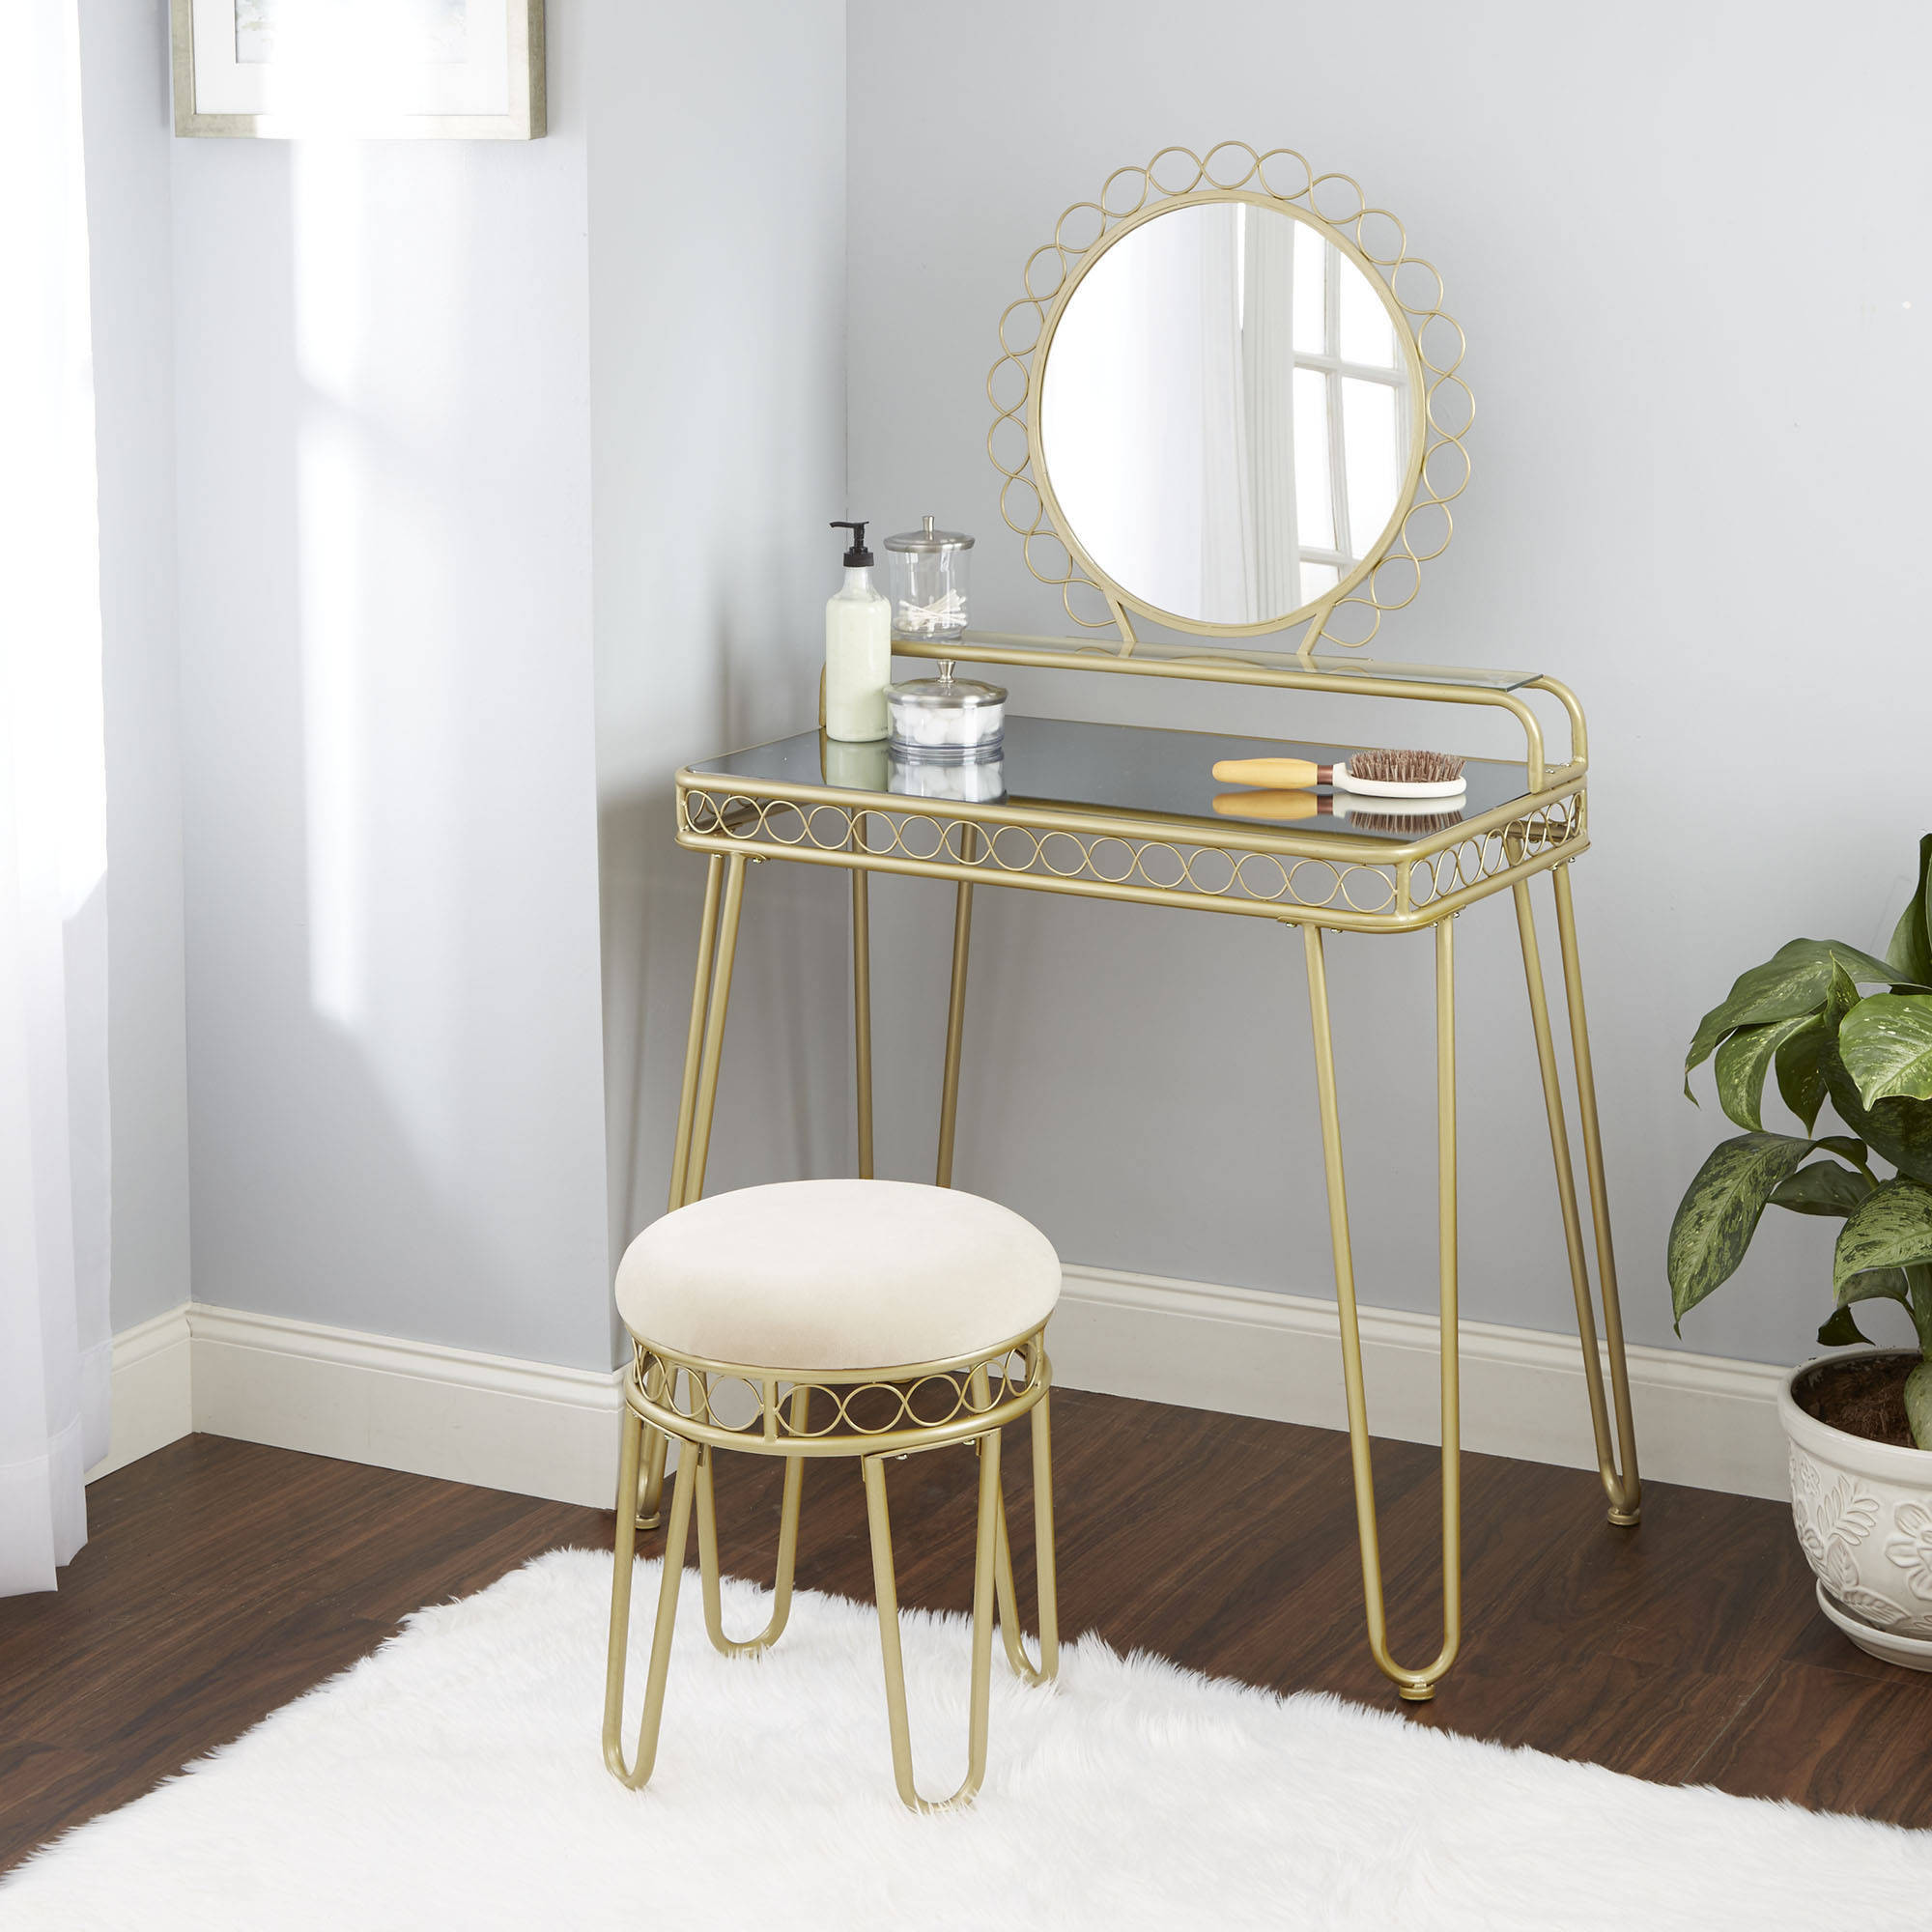 Better Homes and Gardens Mirabella Bedroom Vanity & Stool by CHEYENNE INDUSTRIES LLC